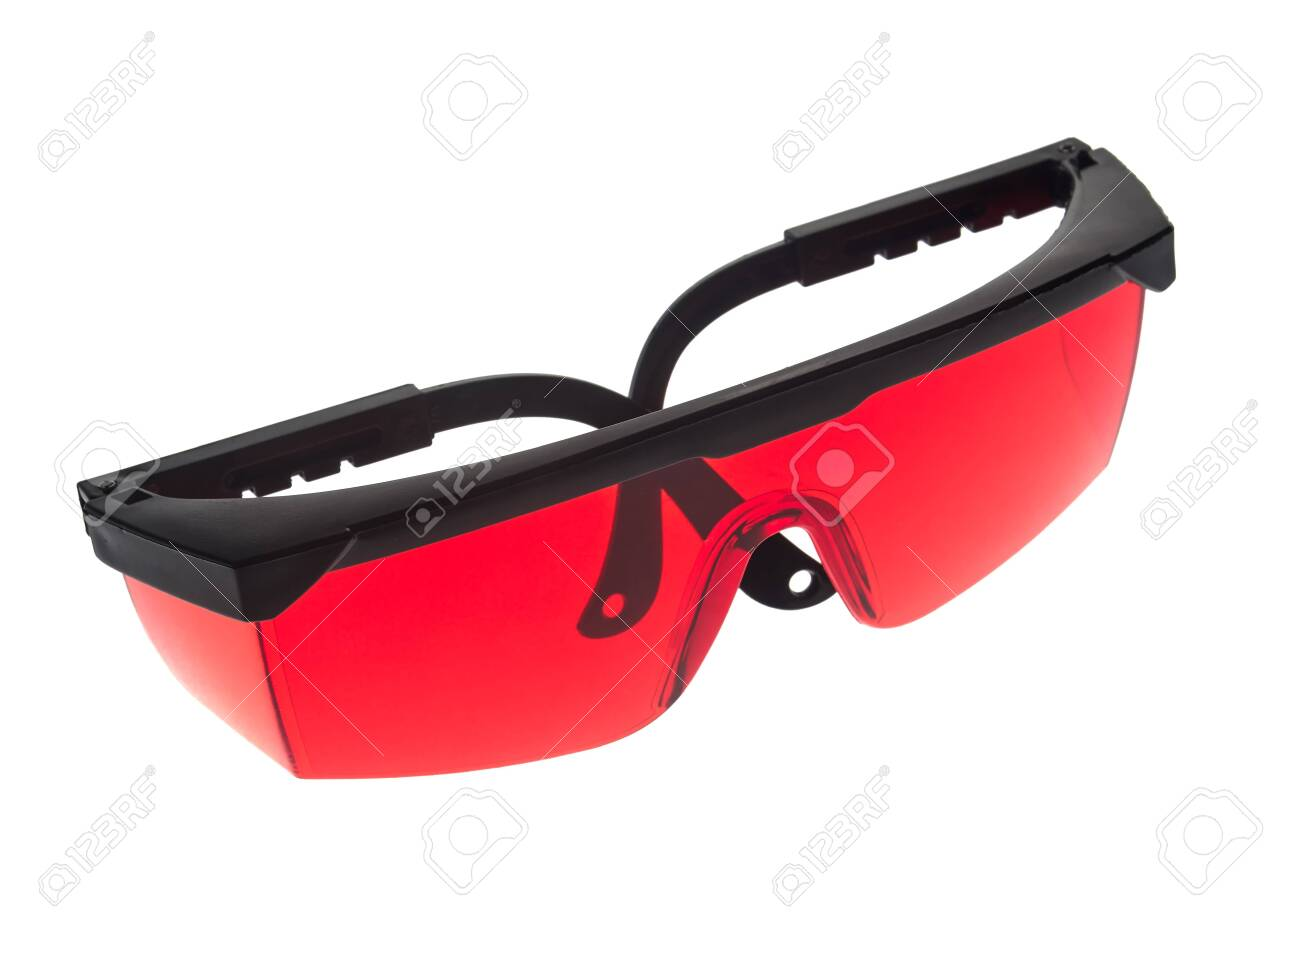 Red glasses used to increase the visibility of the laser beam of a laser level - 153108029